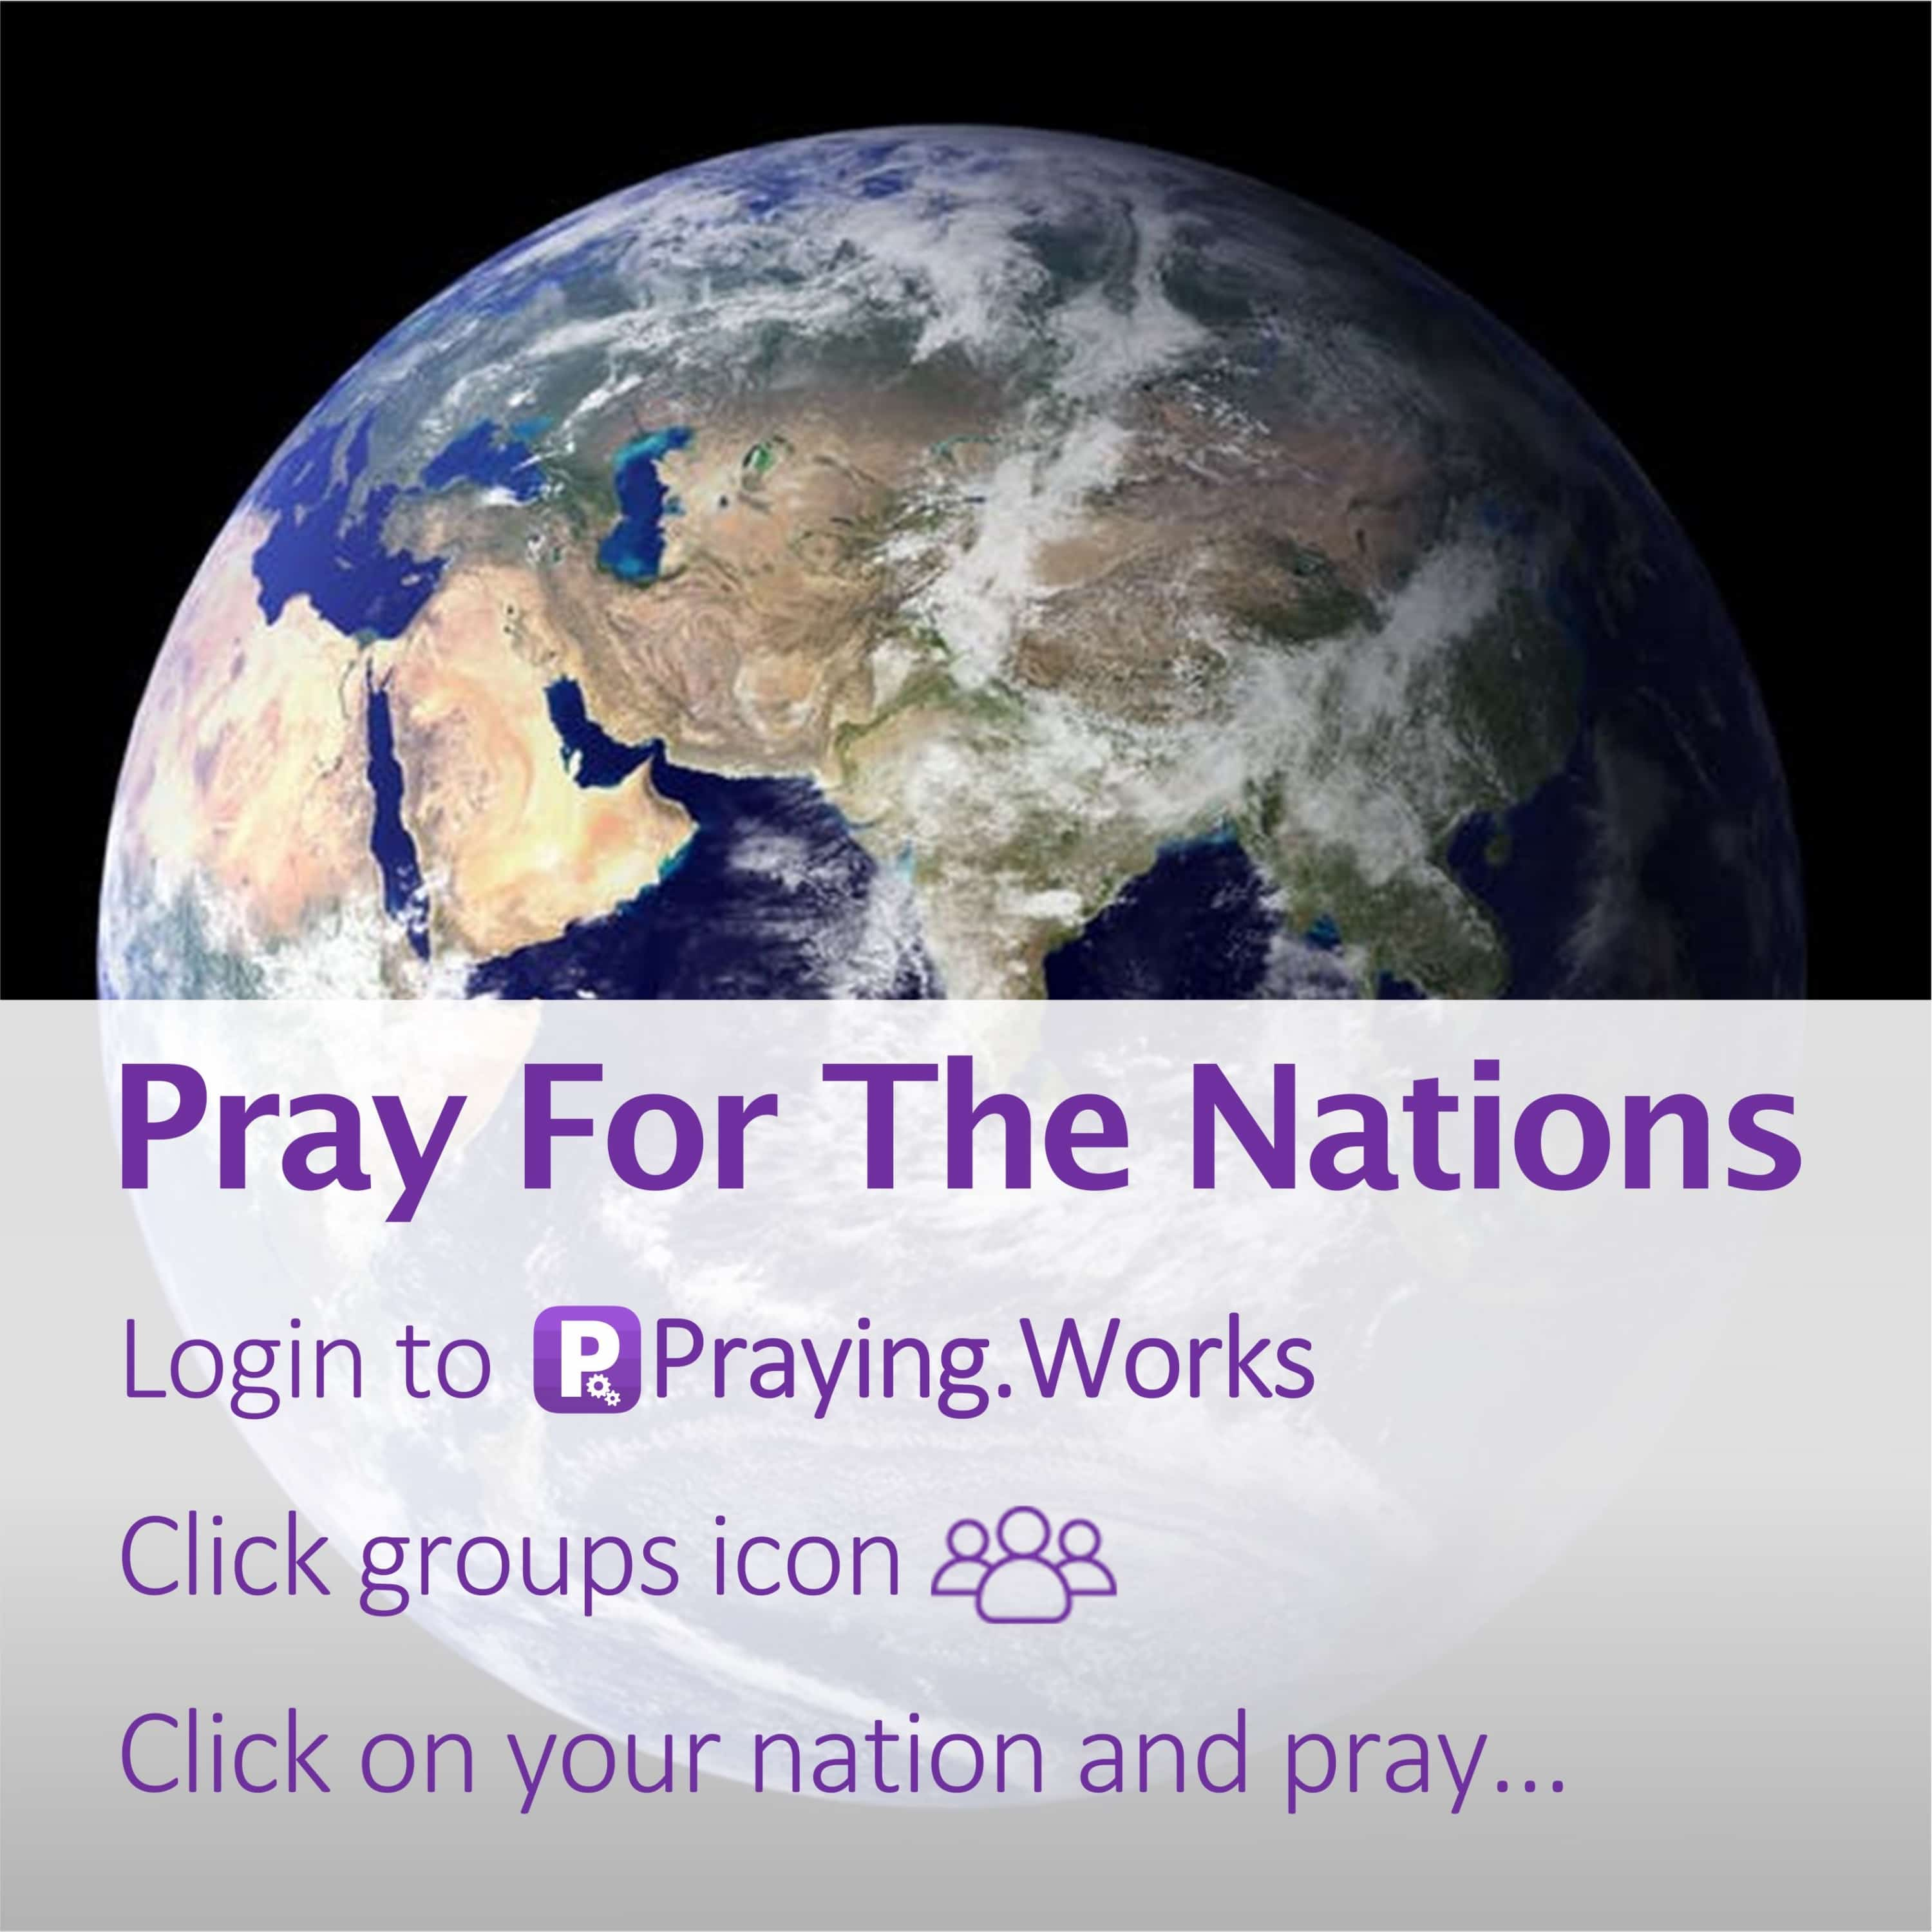 Pray for the Nations 7/7